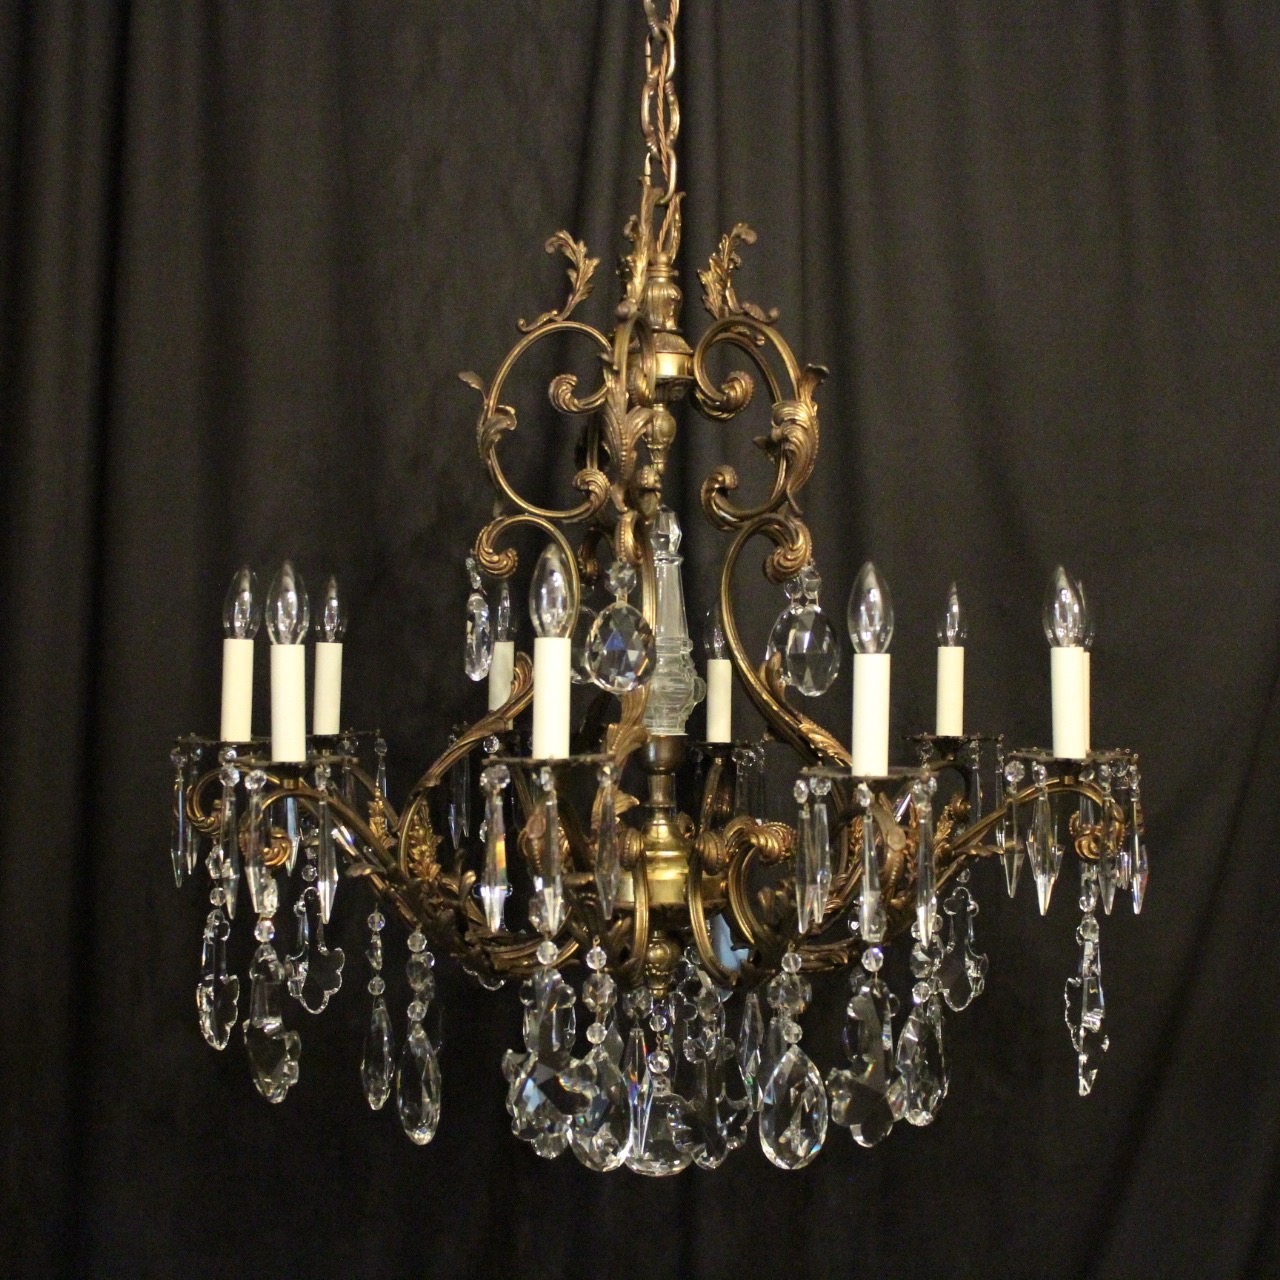 French Gilded 10 Light Antique Chandelier